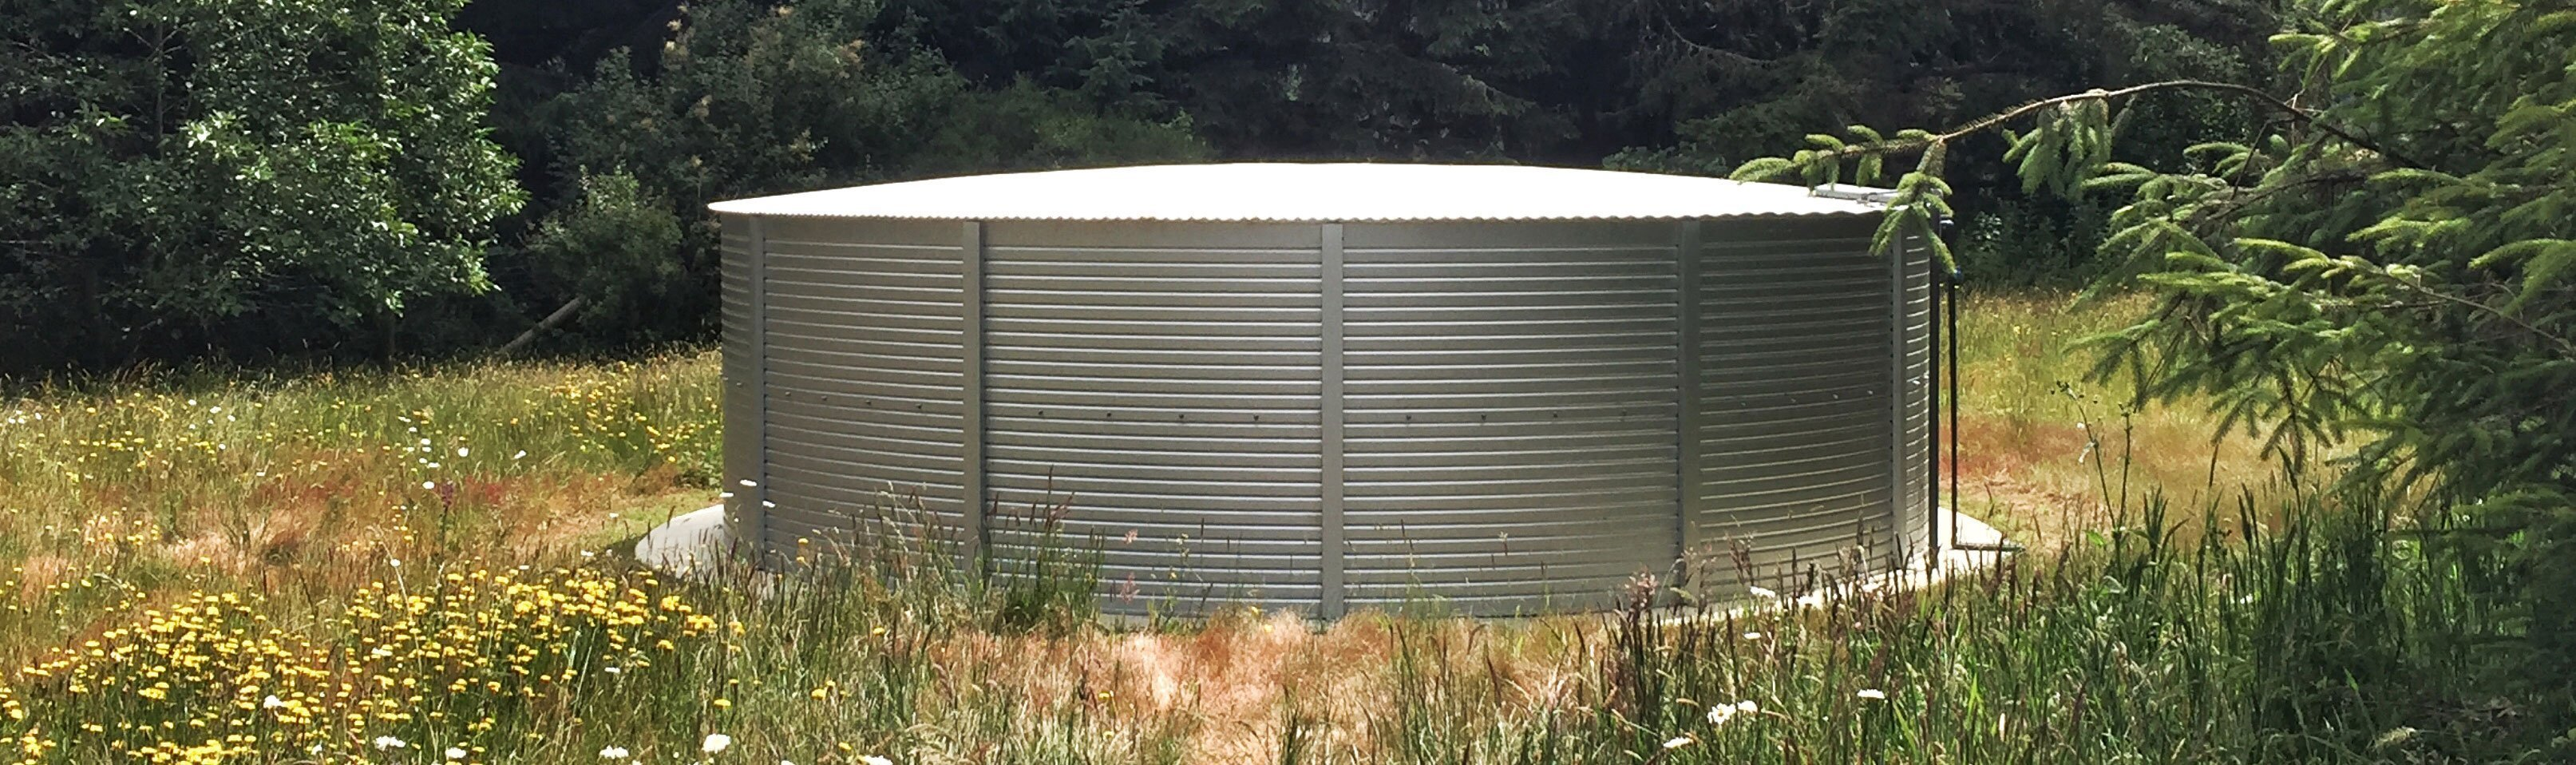 30,000 gallon water tanks